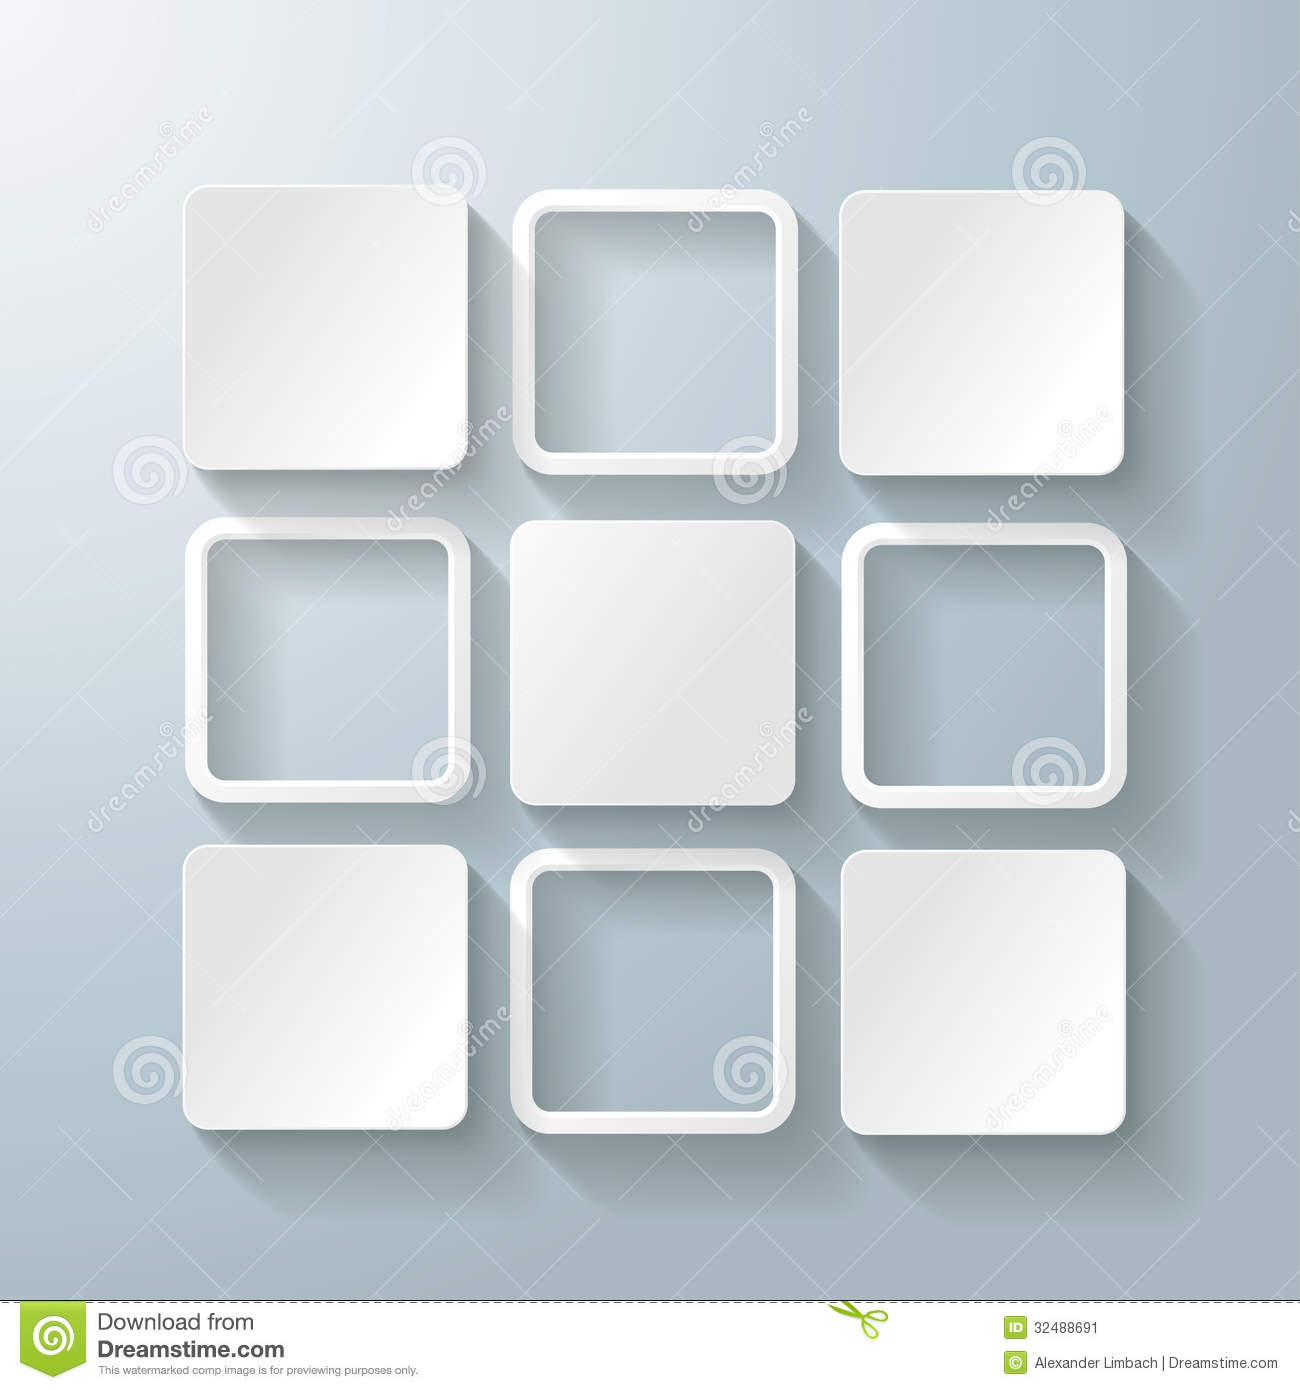 Infographic design on the grey background eps 10 vector file - White Rectangles Squares Design 5 Options Stock Image